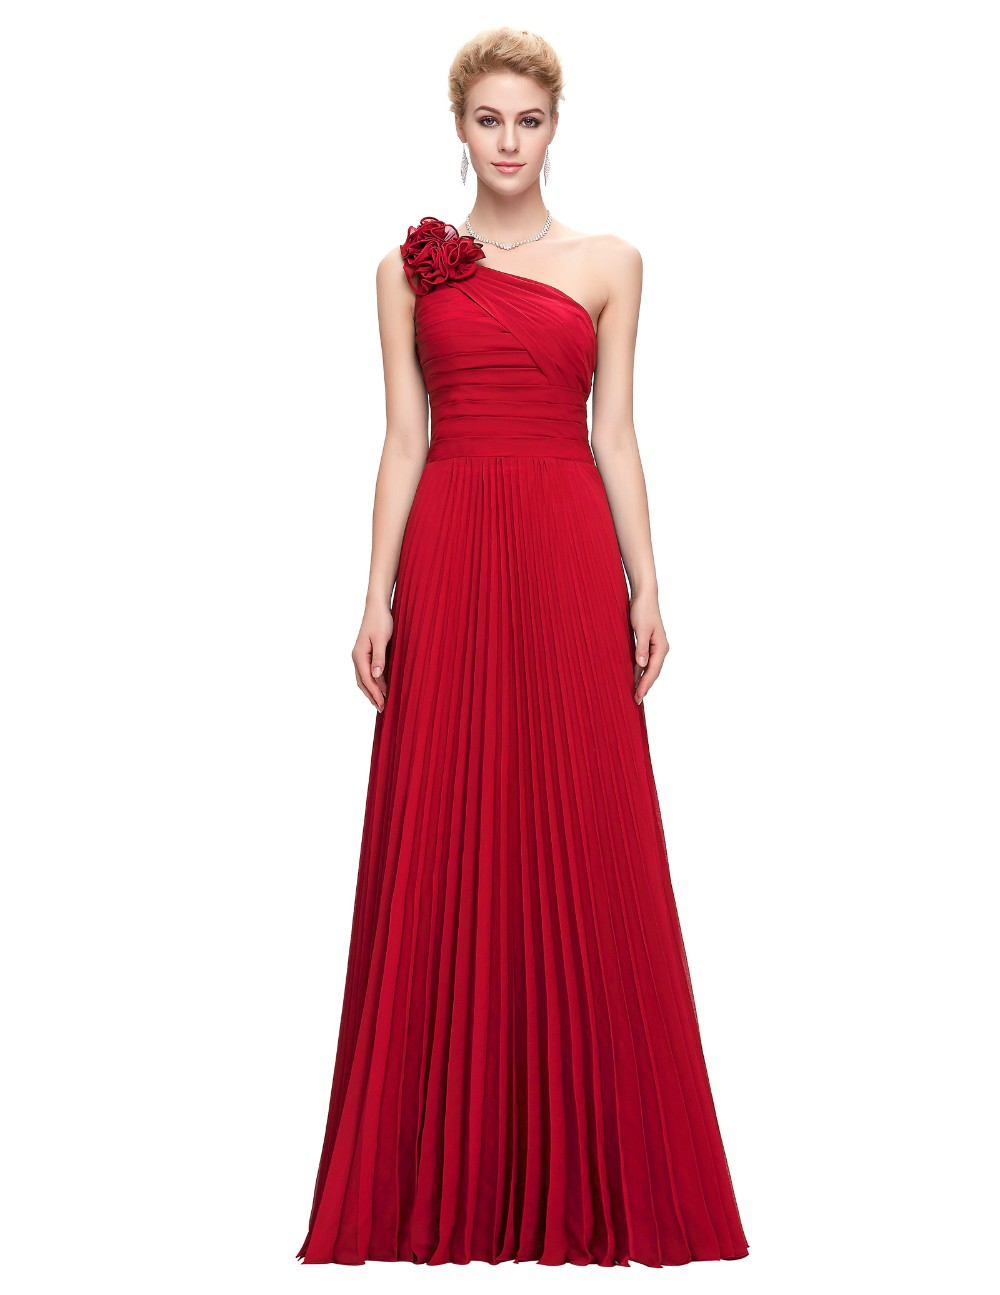 Grace Karin Chiffon Long Evening Dress One Shoulder Pleated Red Green Purple Royal Blue Formal Evening Dress Party Gowns 2018 10